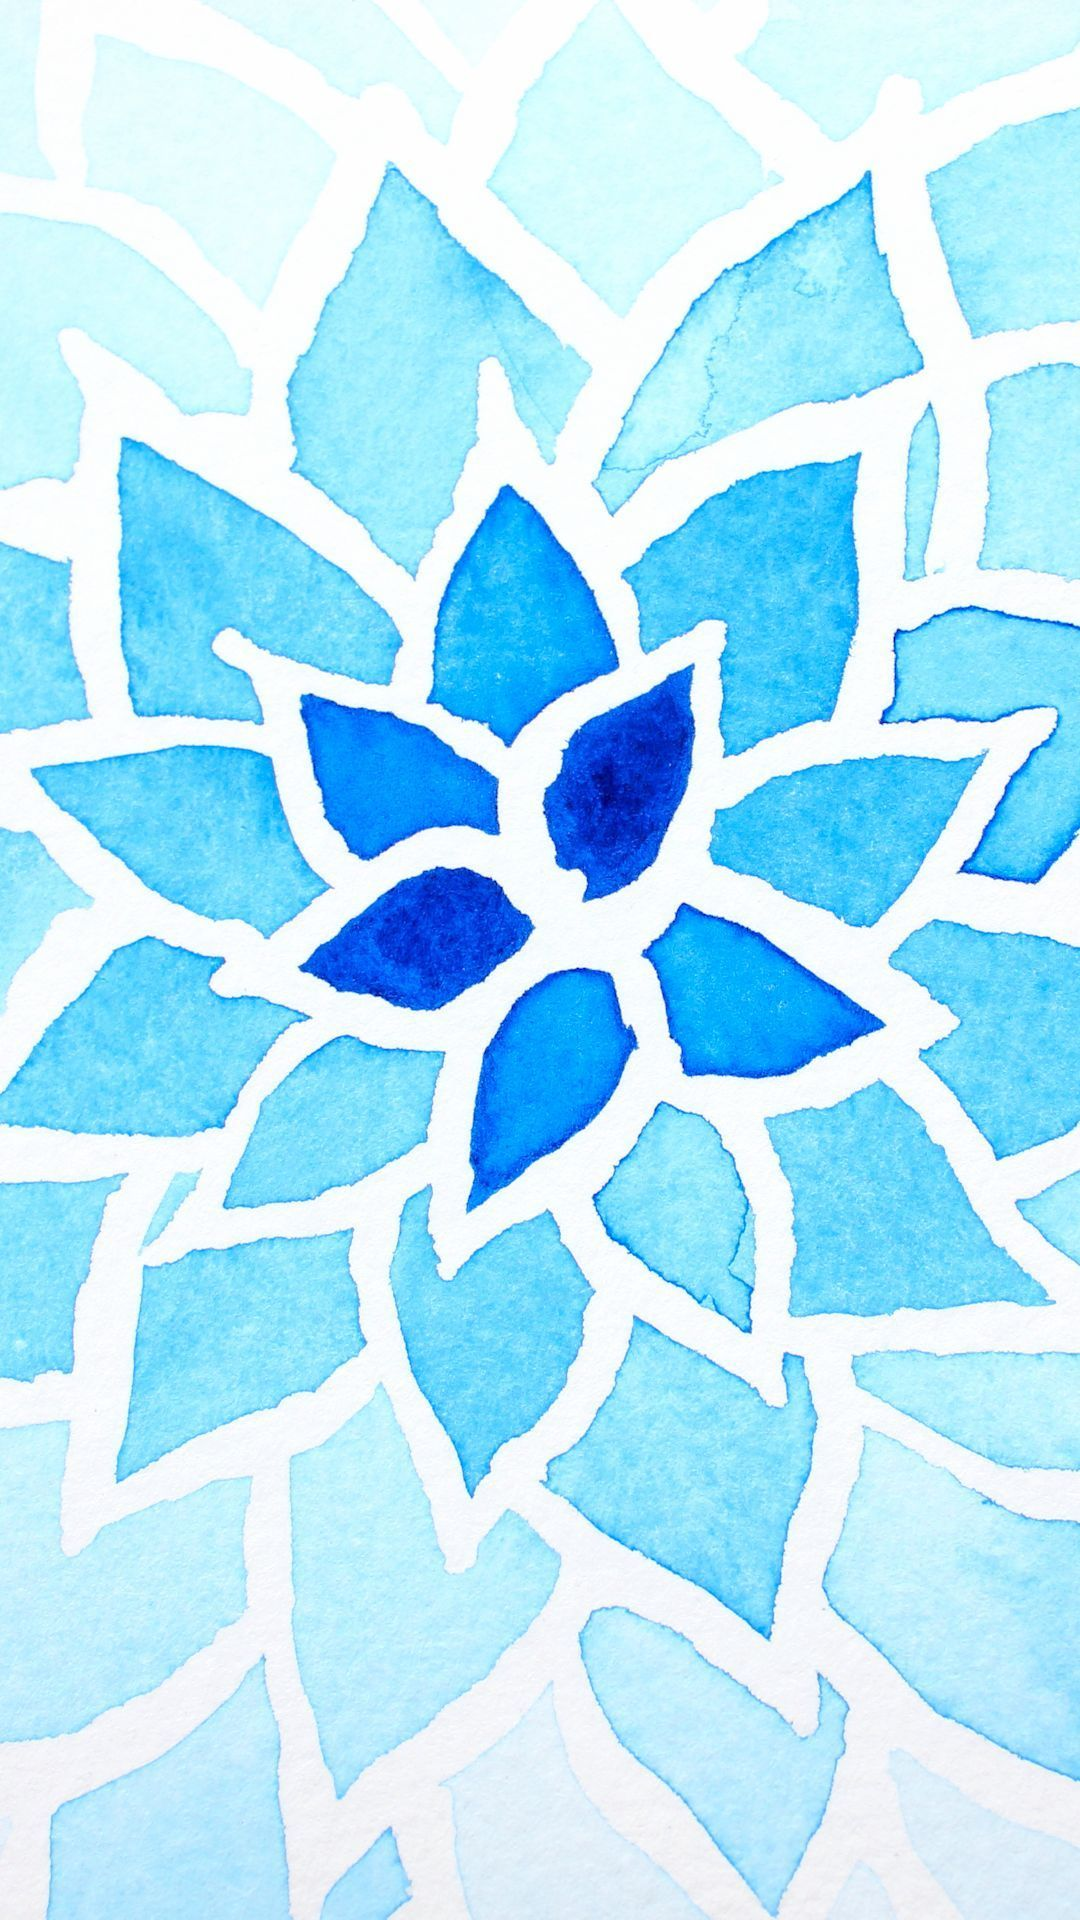 Wallpaper iphone mandala - Watercolor Flower Find More Watercolor Android Iphone Wallpapers Prettywallpaper